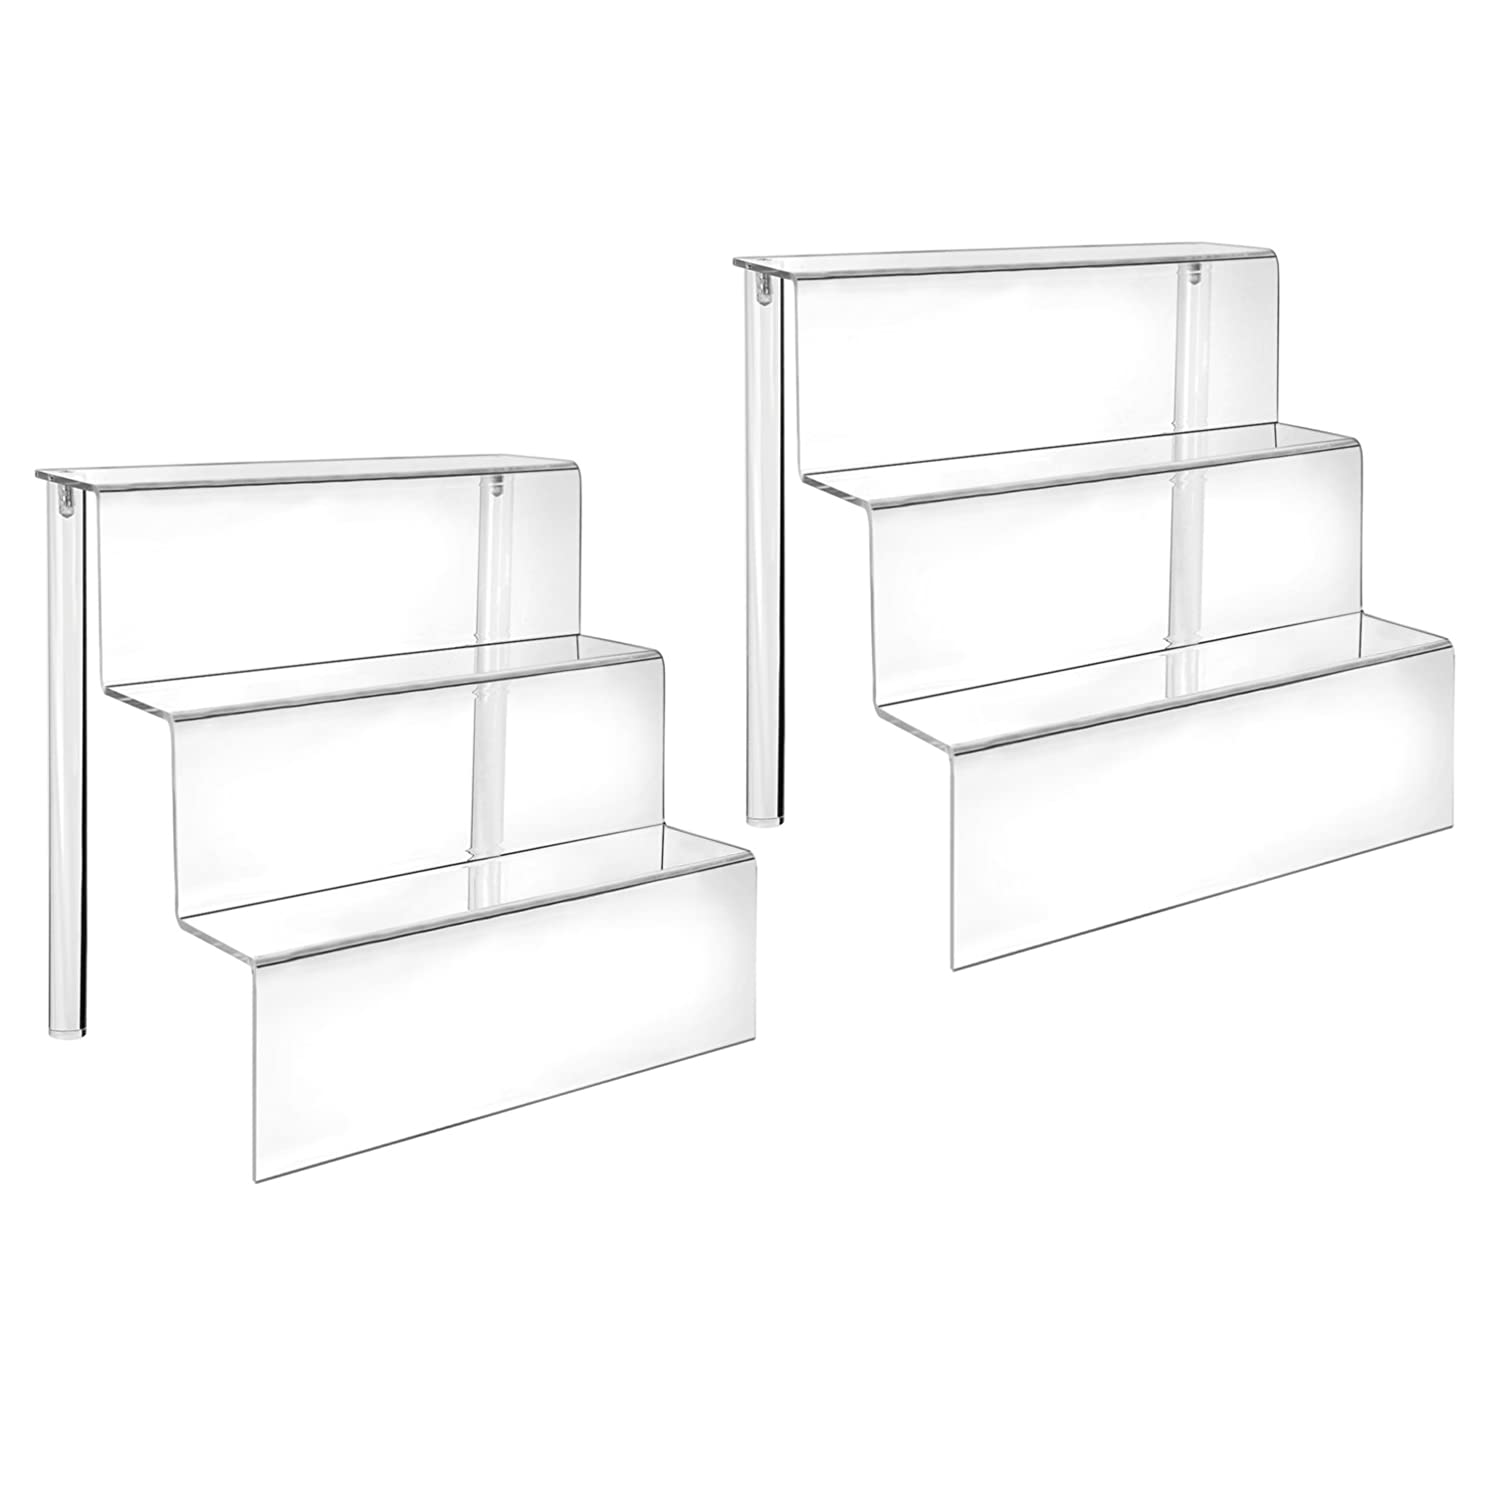 HESIN Acrylic Risers 9-inch W by 6.25-inch D Three-Tier Acrylic Step Display for Decoration and Organizer 1 Pack